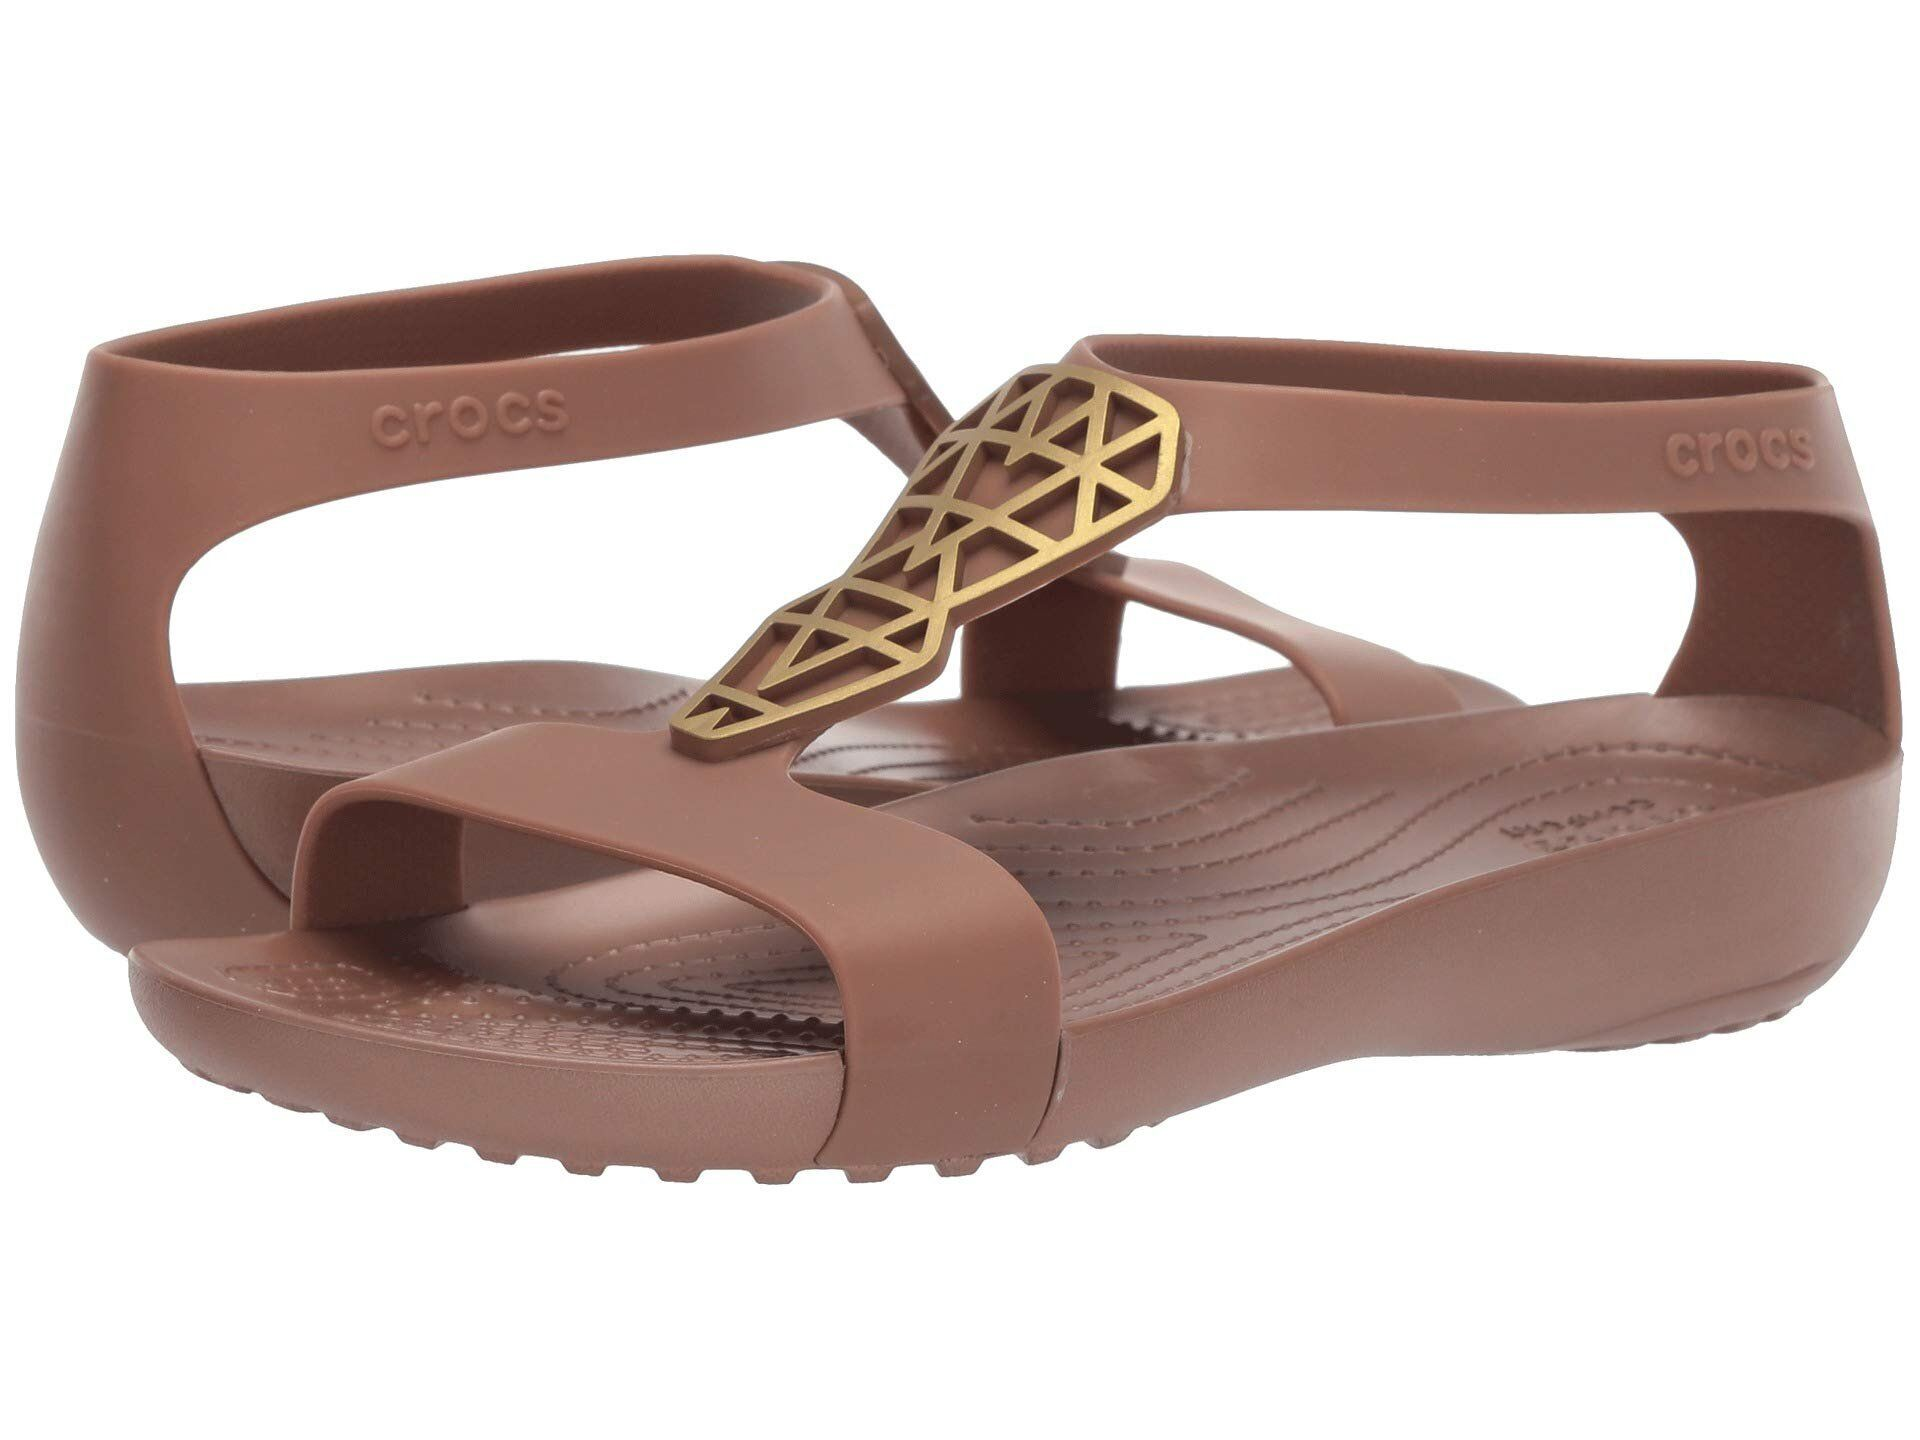 Sandals To Wear In The Rain